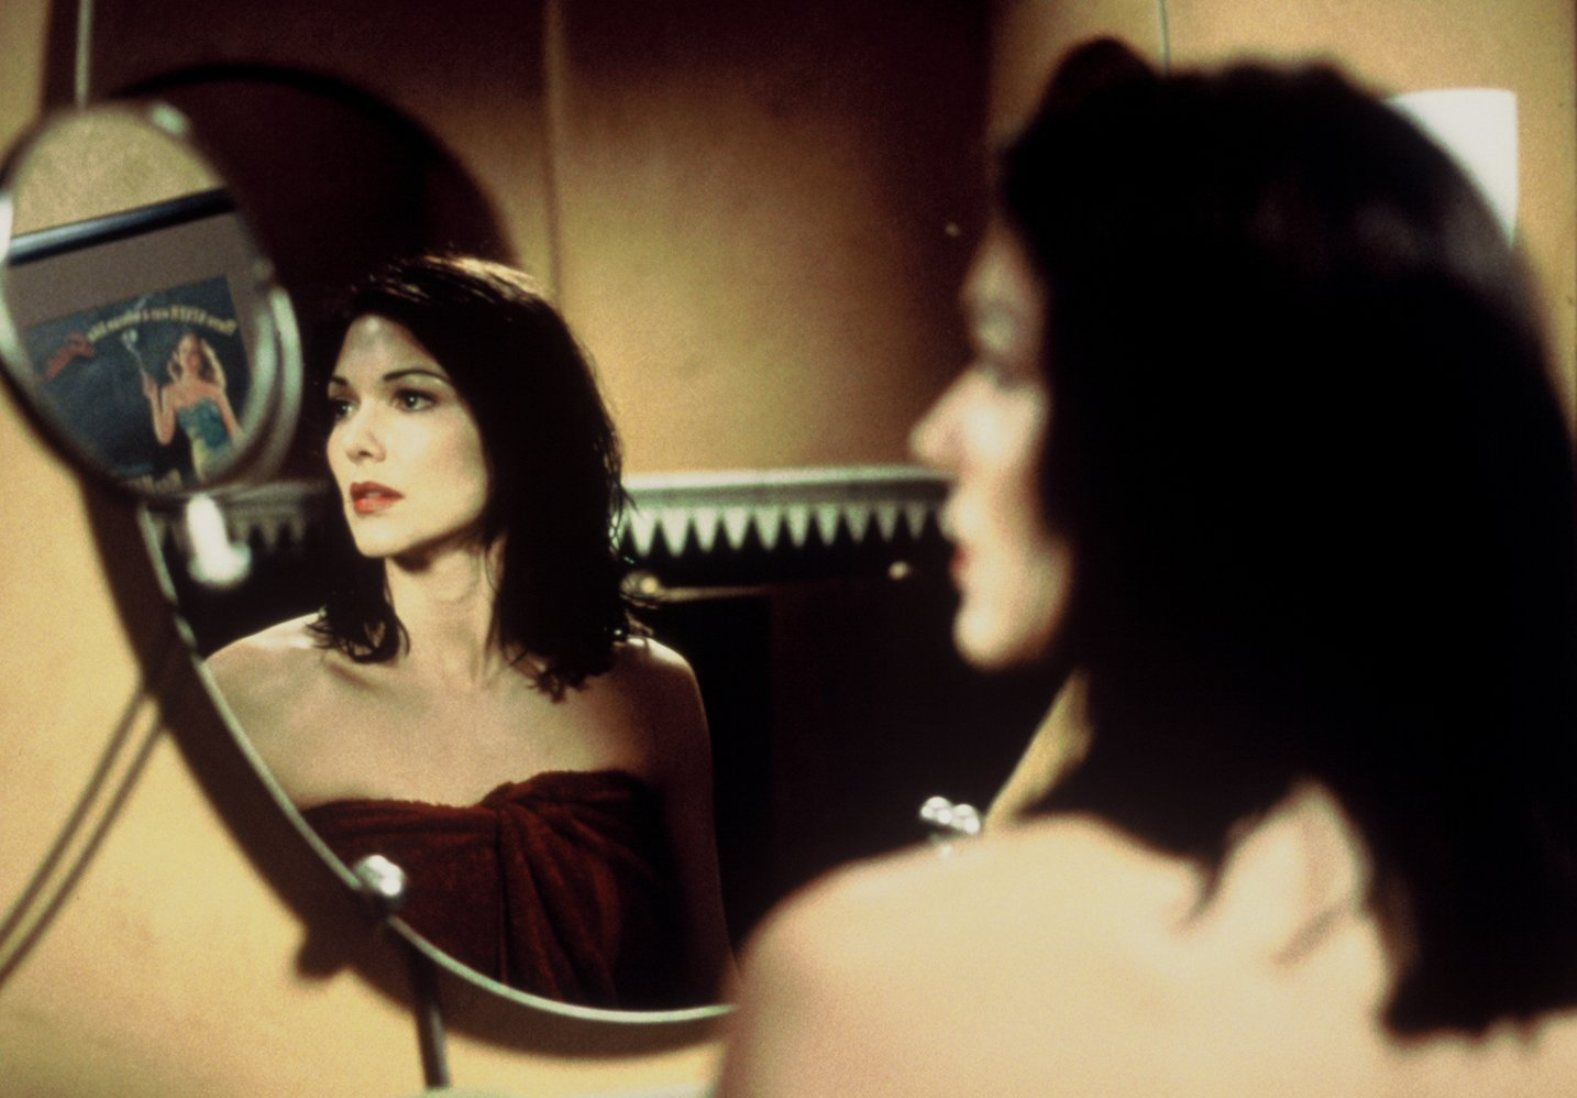 Laura Harringin Mulholland Dr. (2001)